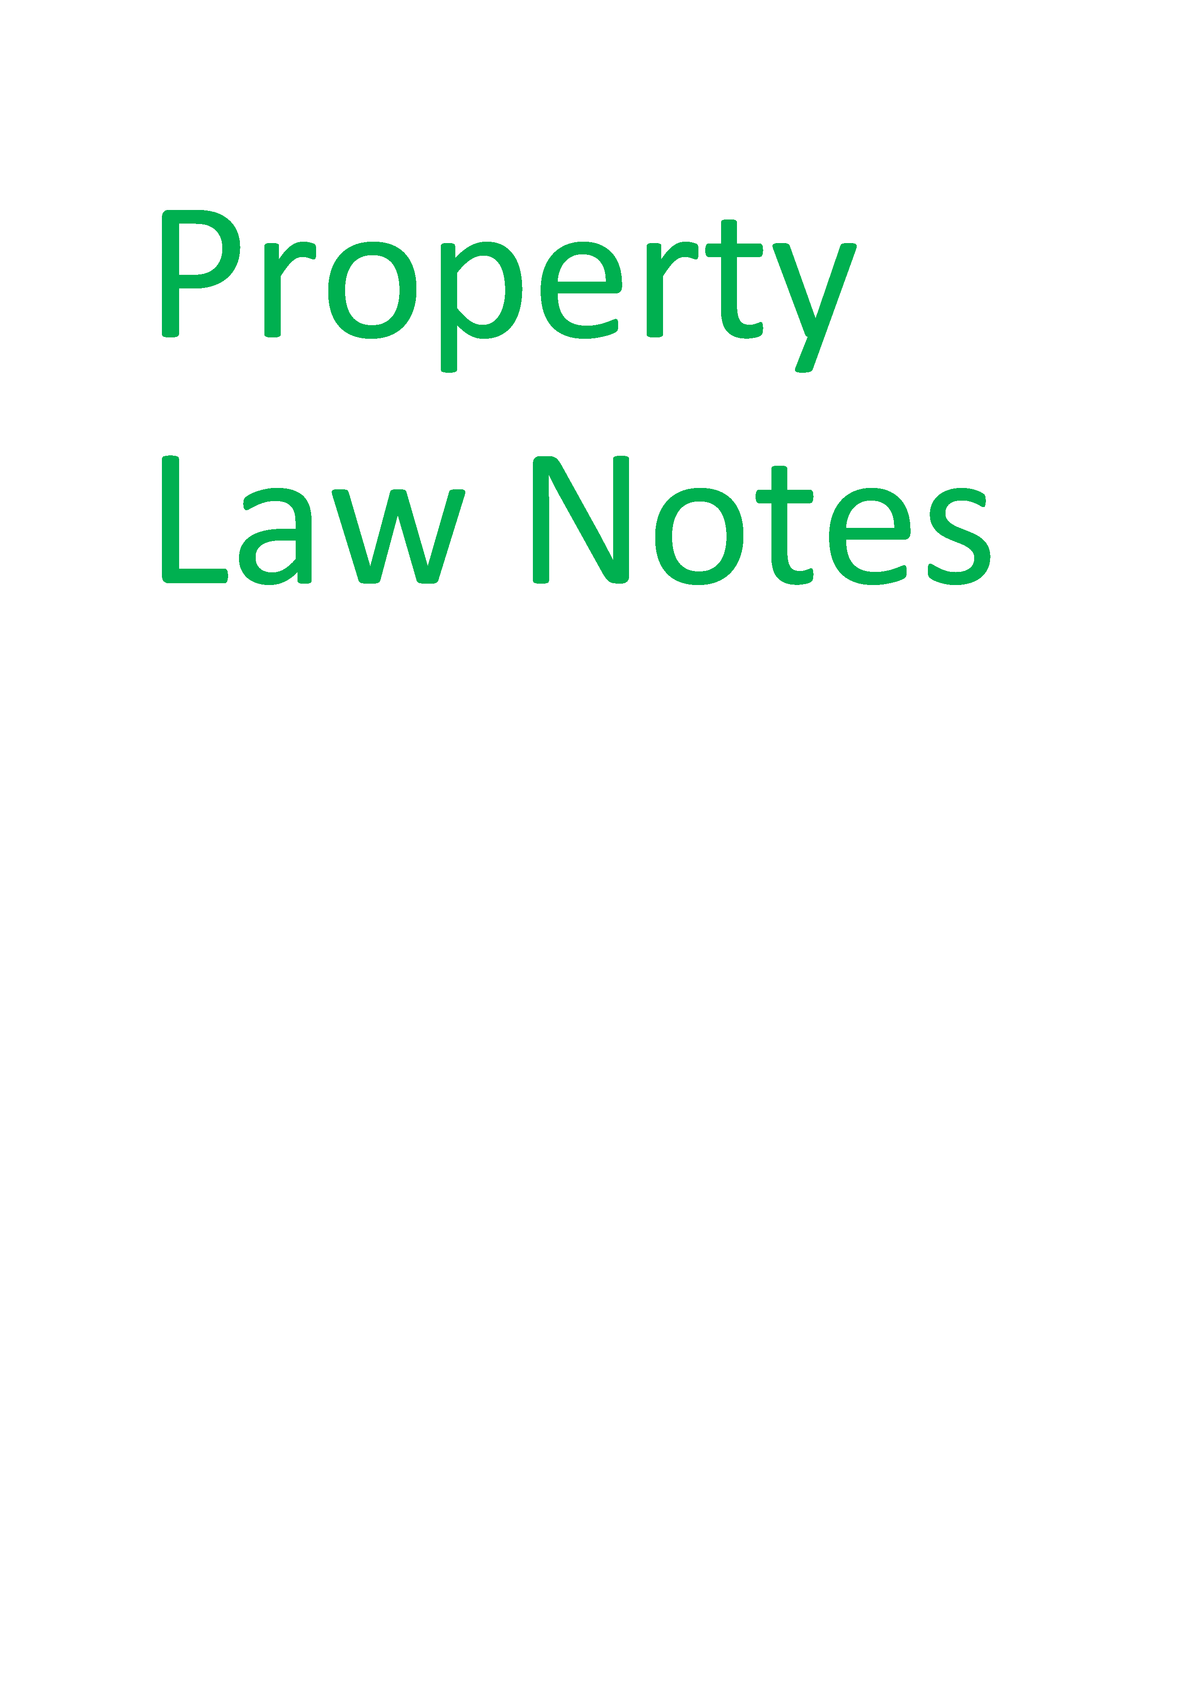 Property Law Notes - LAWS10084: Property Law - StuDocu